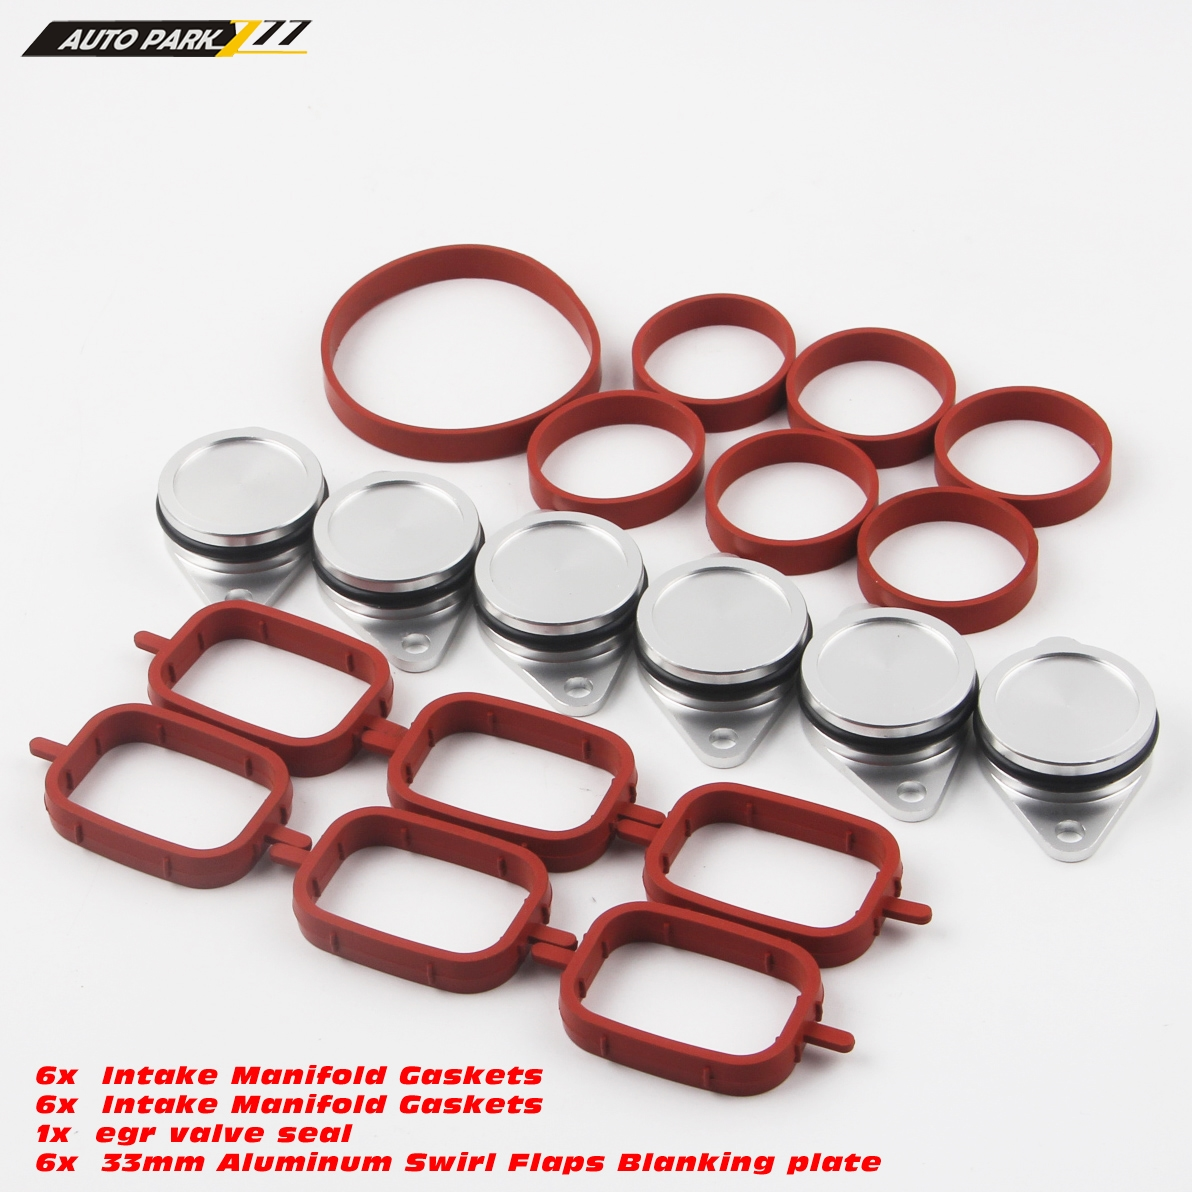 6pcs 32mm Swirl Flap Blanking Kit With ManIfold Gasket For BMW E46 E90 E65 E53 Micro Trader